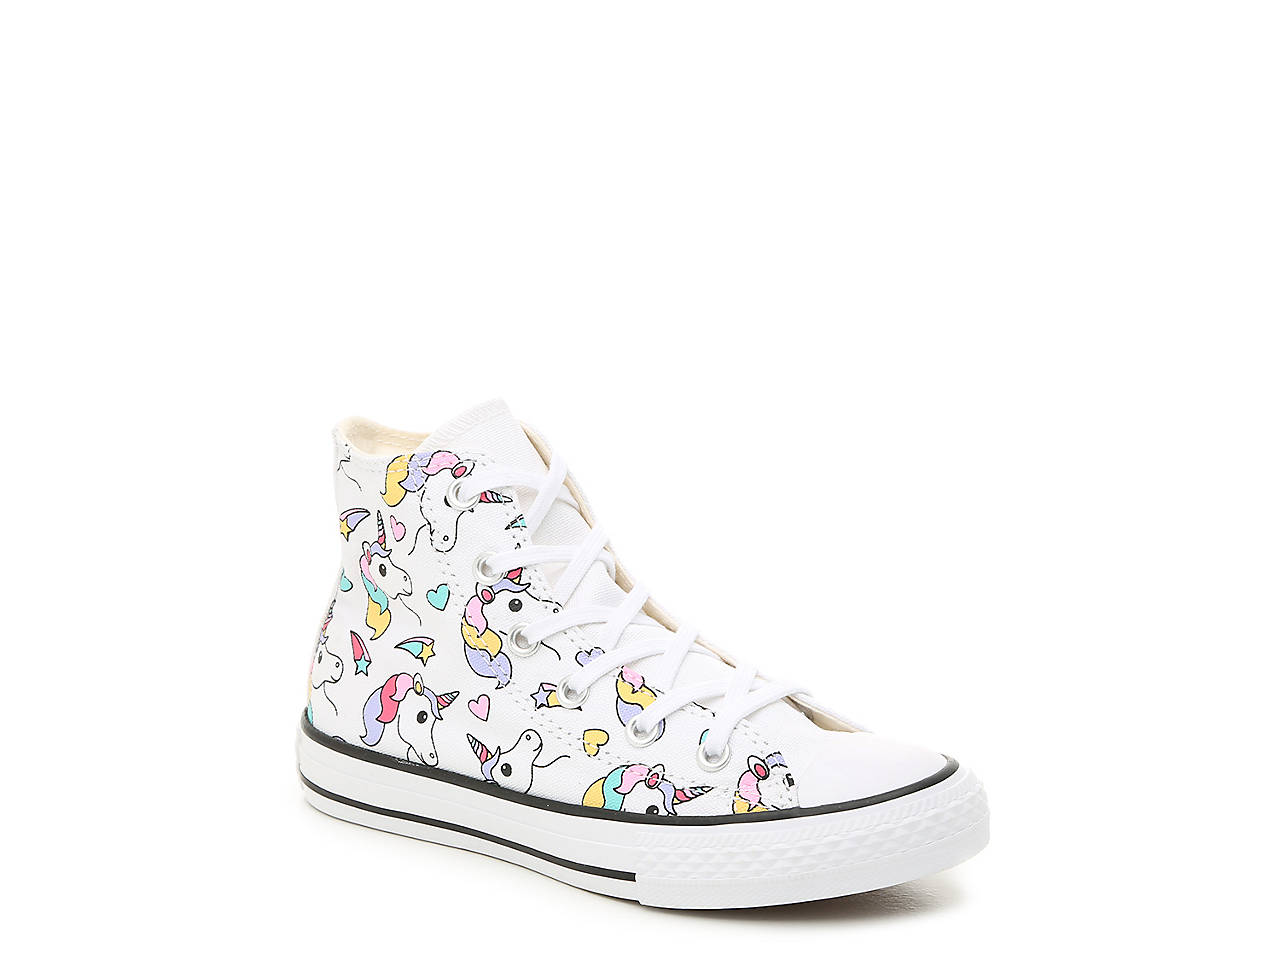 aa0b6f696edc Converse Chuck Taylor All Star Unicorn Toddler   Youth High-Top ...